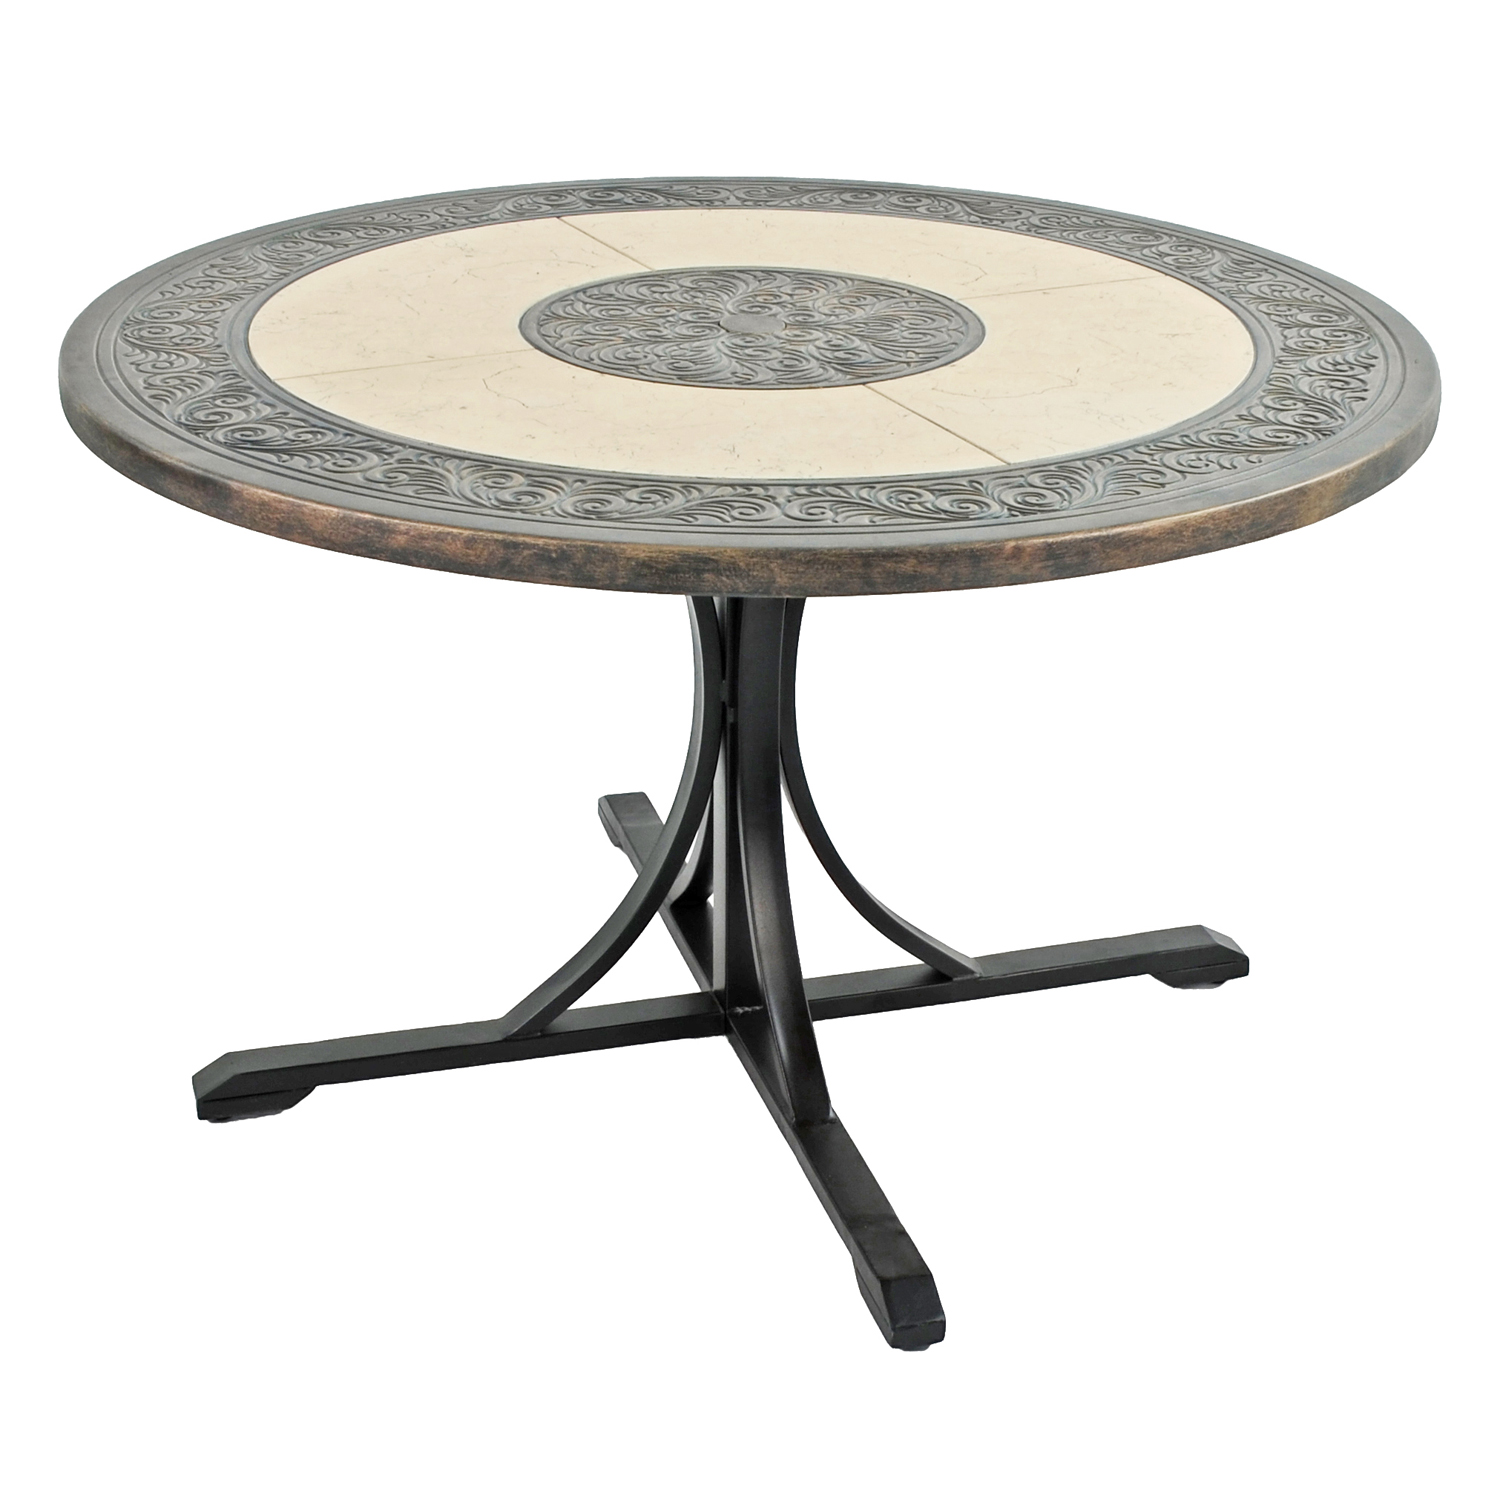 ST MALO 122CM DINING TABLE PROFILE